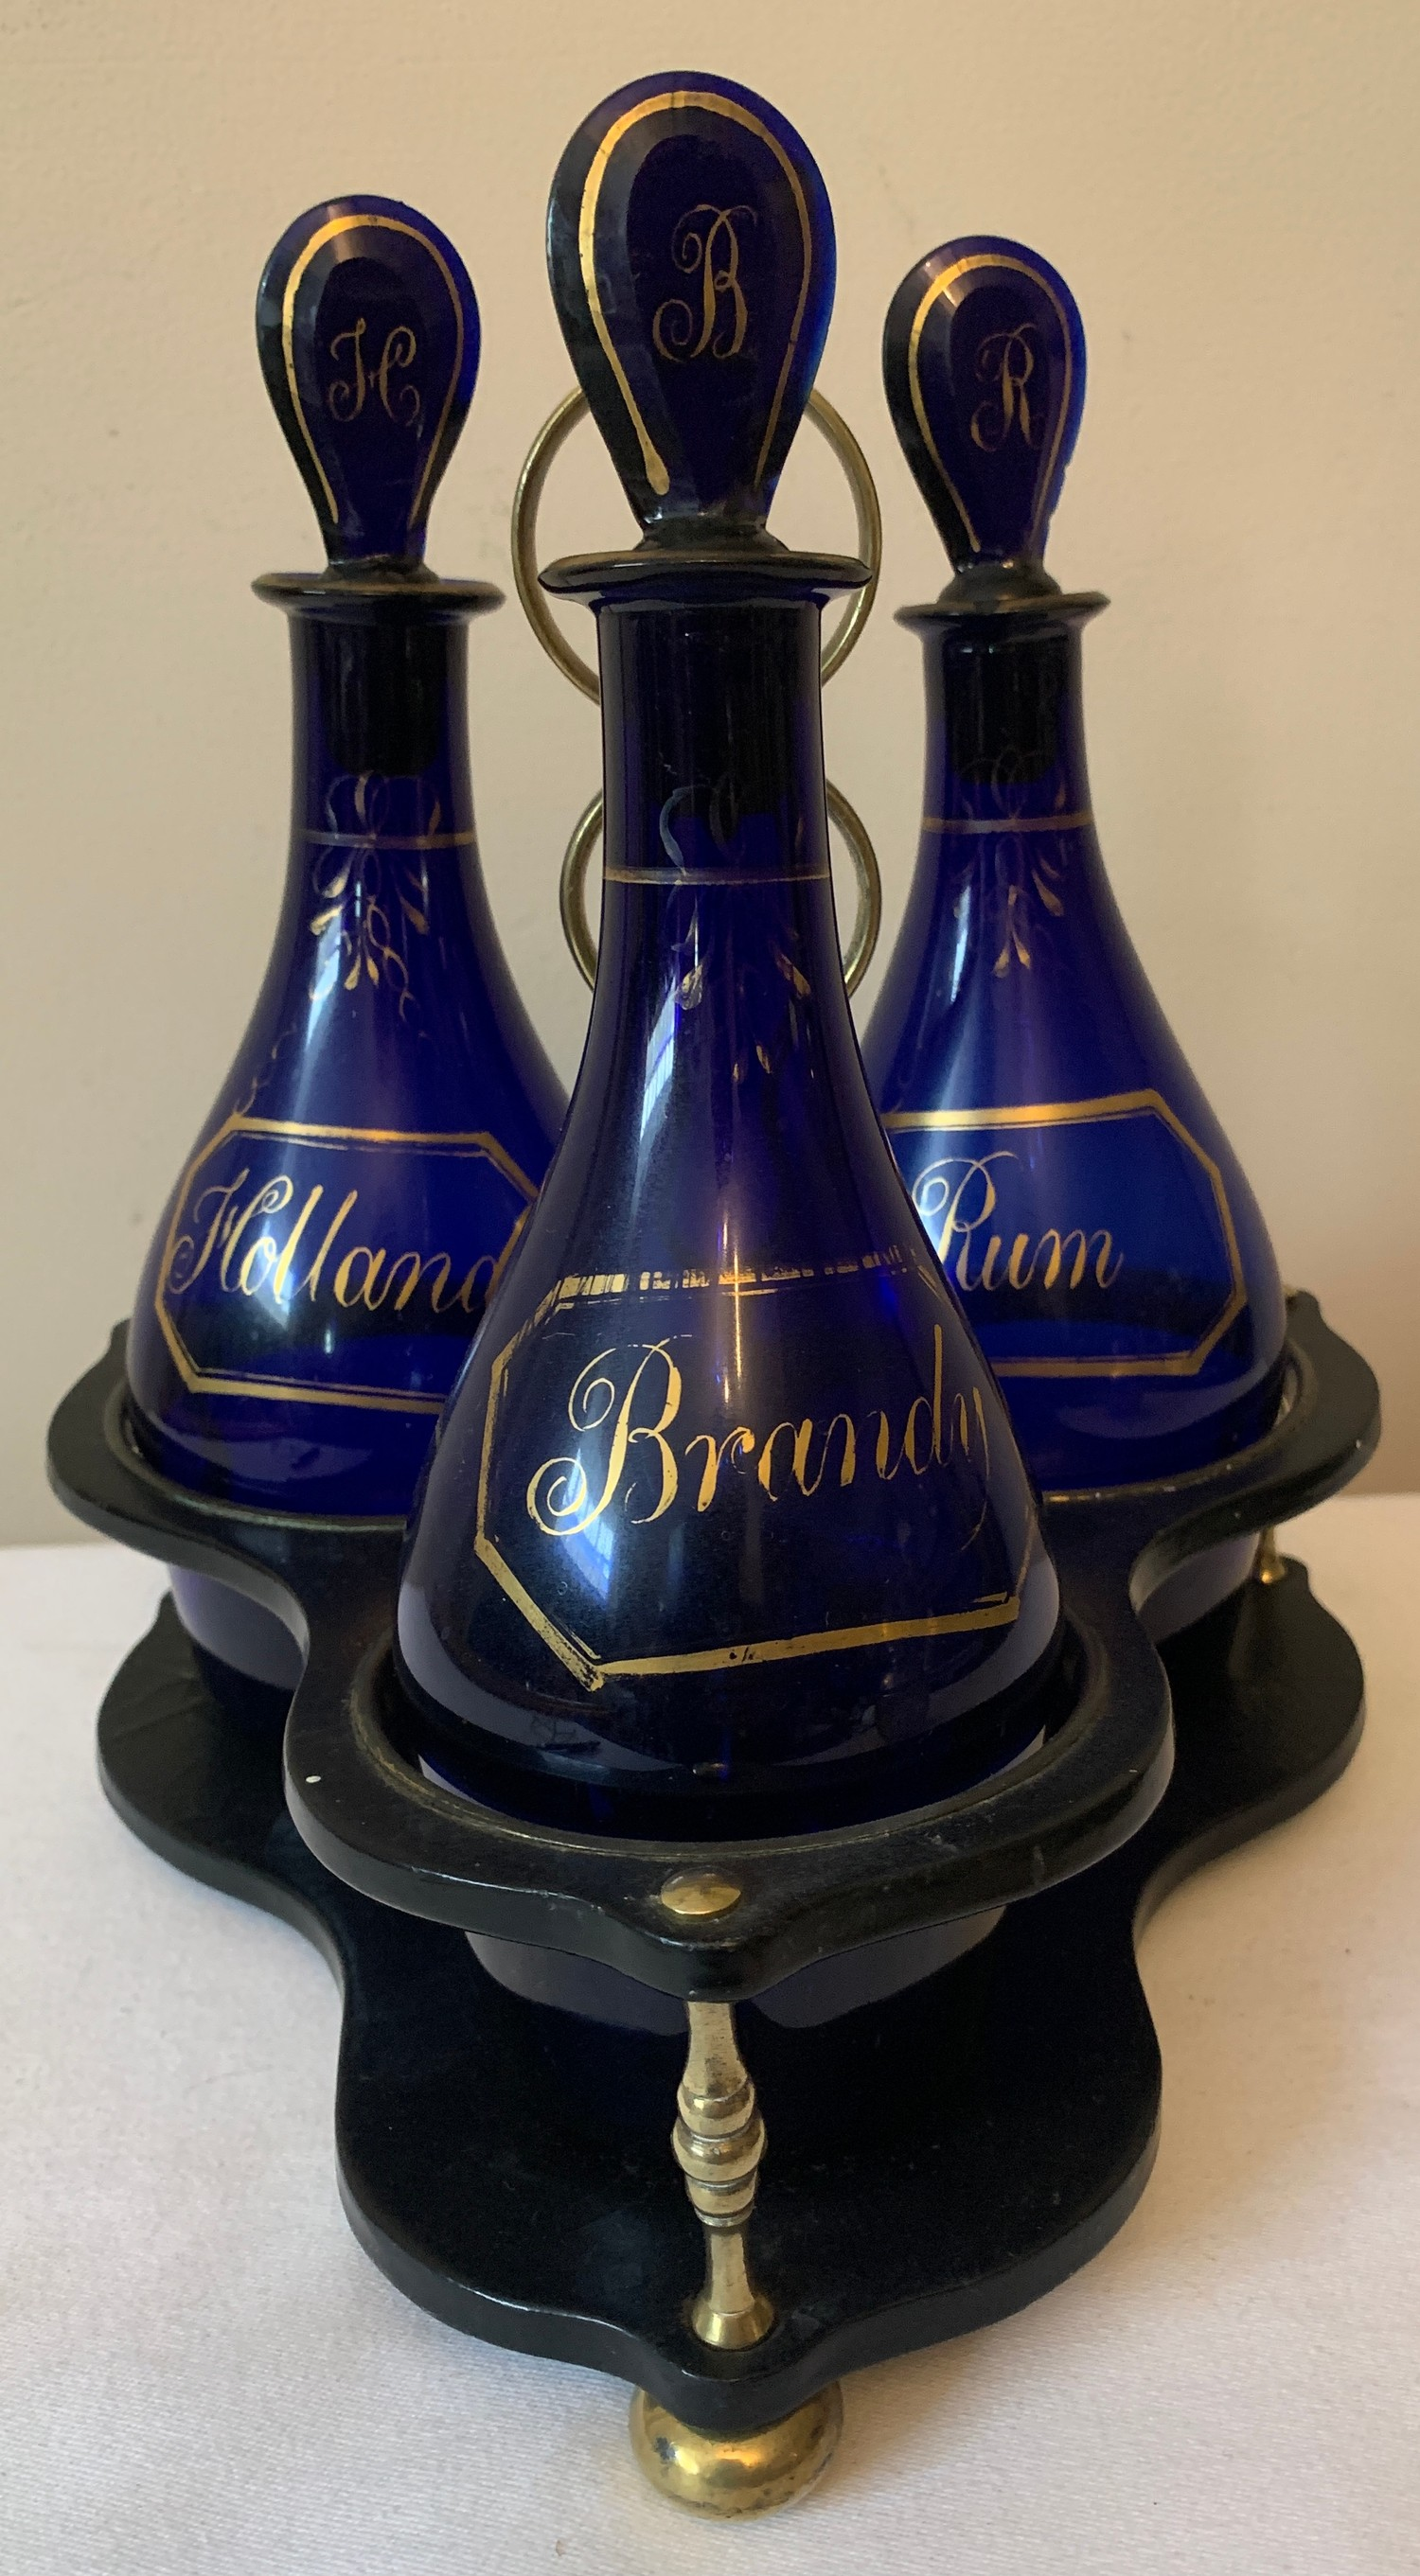 Three early 19thC Bristol Blue bottle decanters on paper mache and brass stand. Comprises of - Image 2 of 8